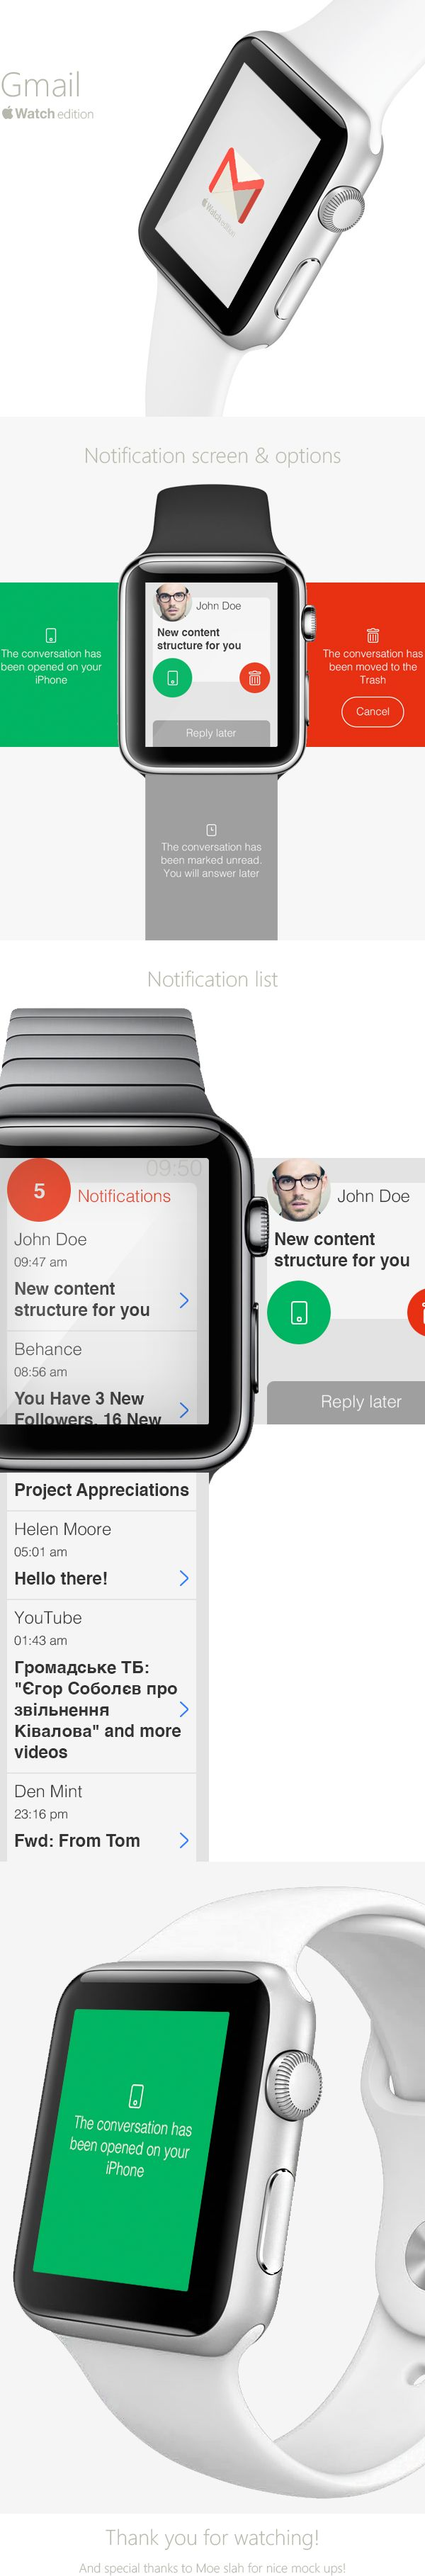 Gmail Apple Watch Concept on Behance